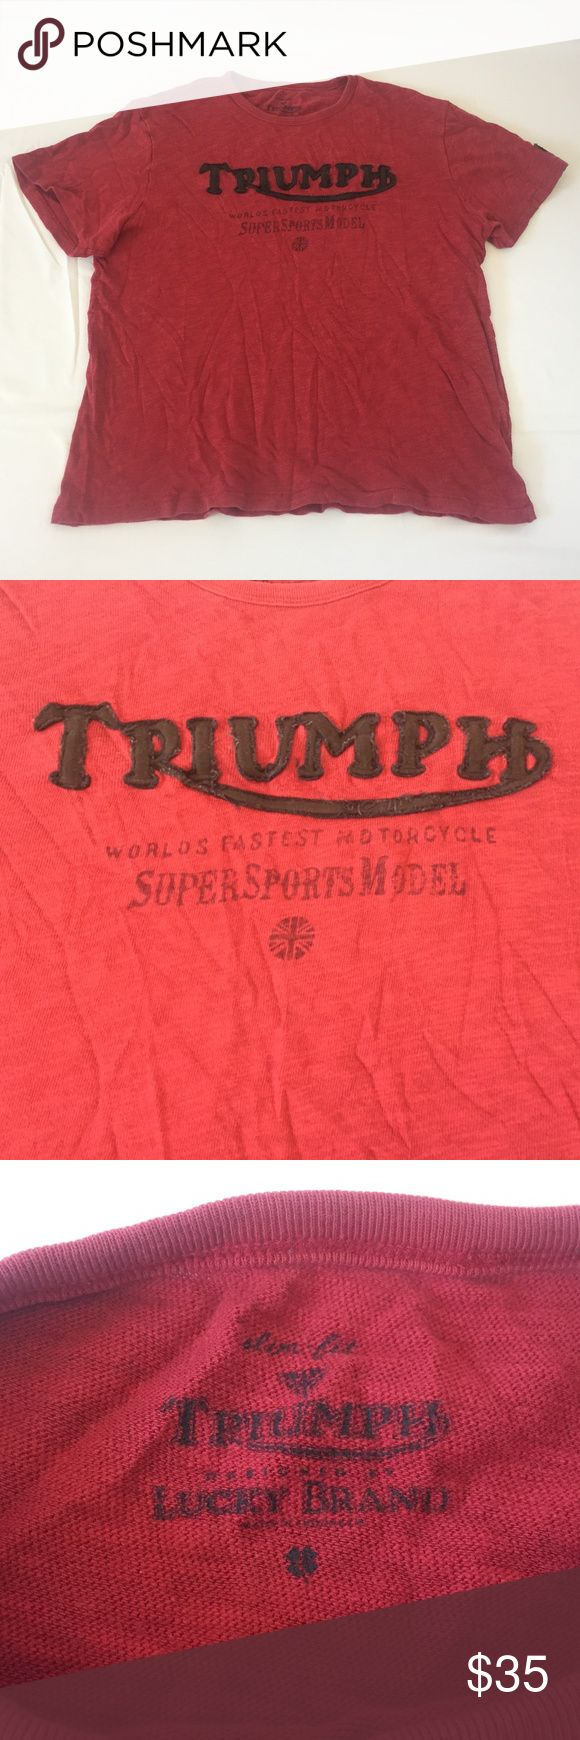 Triumph Motorcycles T-Shirt Pre-owned, in good condition, Men's Slim Fit Large, Red Triumph Motorcycles T-Shirt made by Lucky Brand. Please refer to photos for condition and details. Lucky Brand Shirts Tees - Short Sleeve